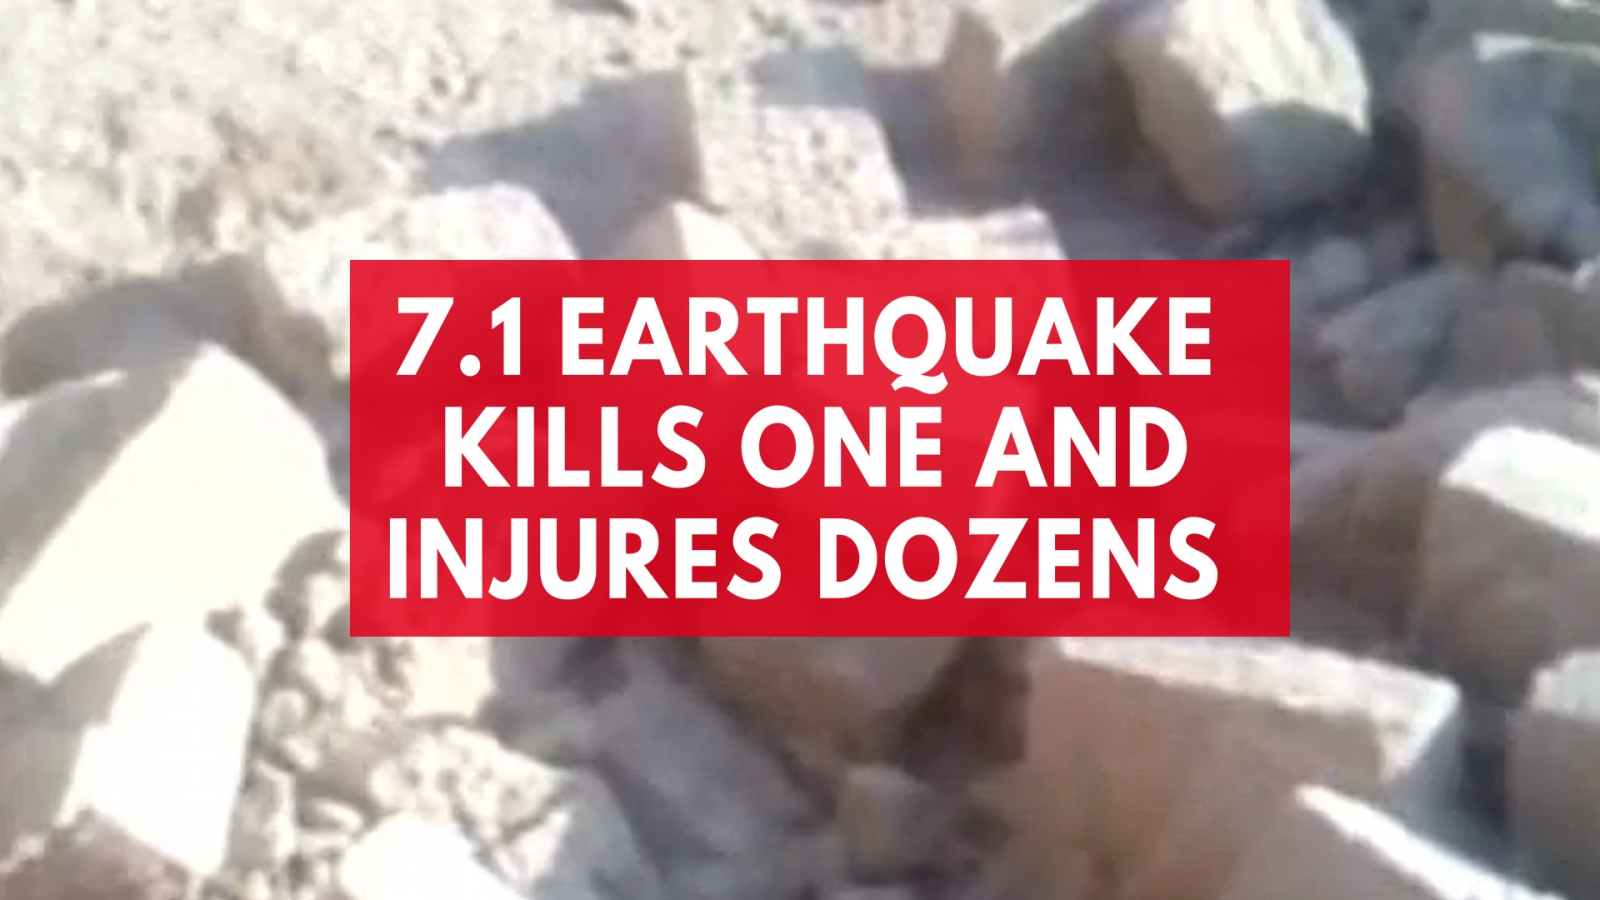 One Dead And Dozens Injured From 7.1-Magnitude Earthquake In Peru